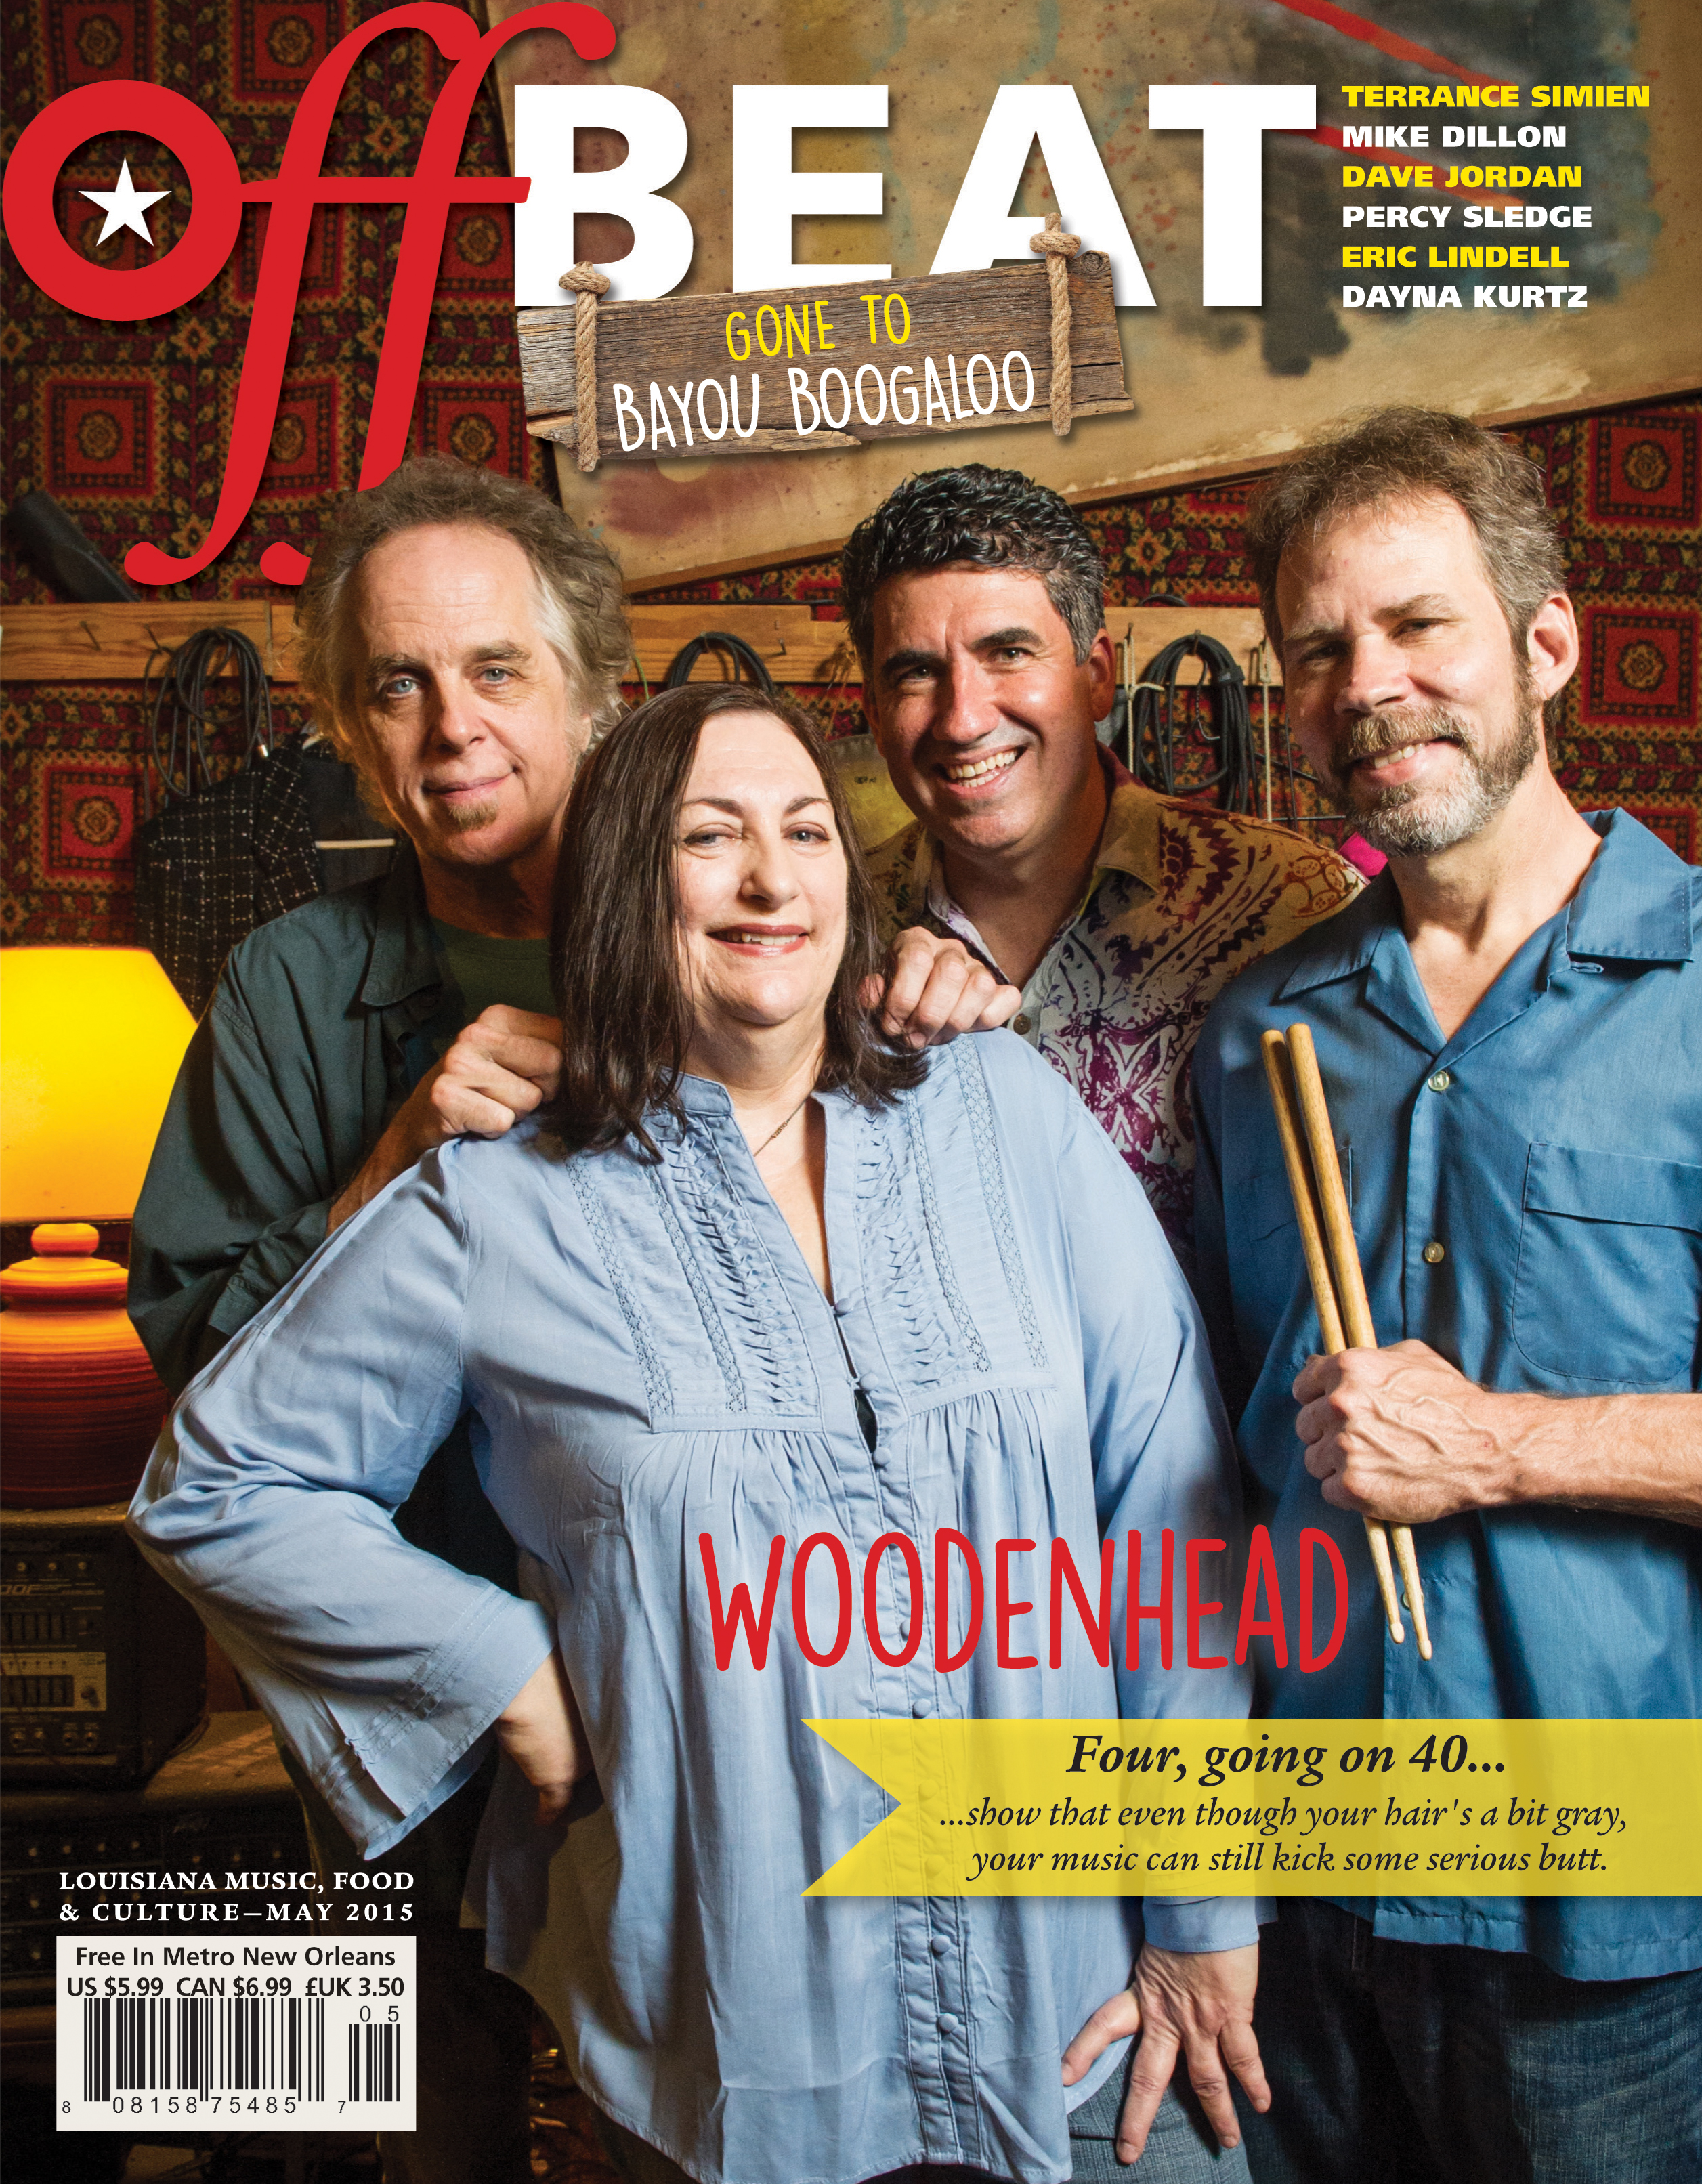 OffBeat Magazine, May 2015